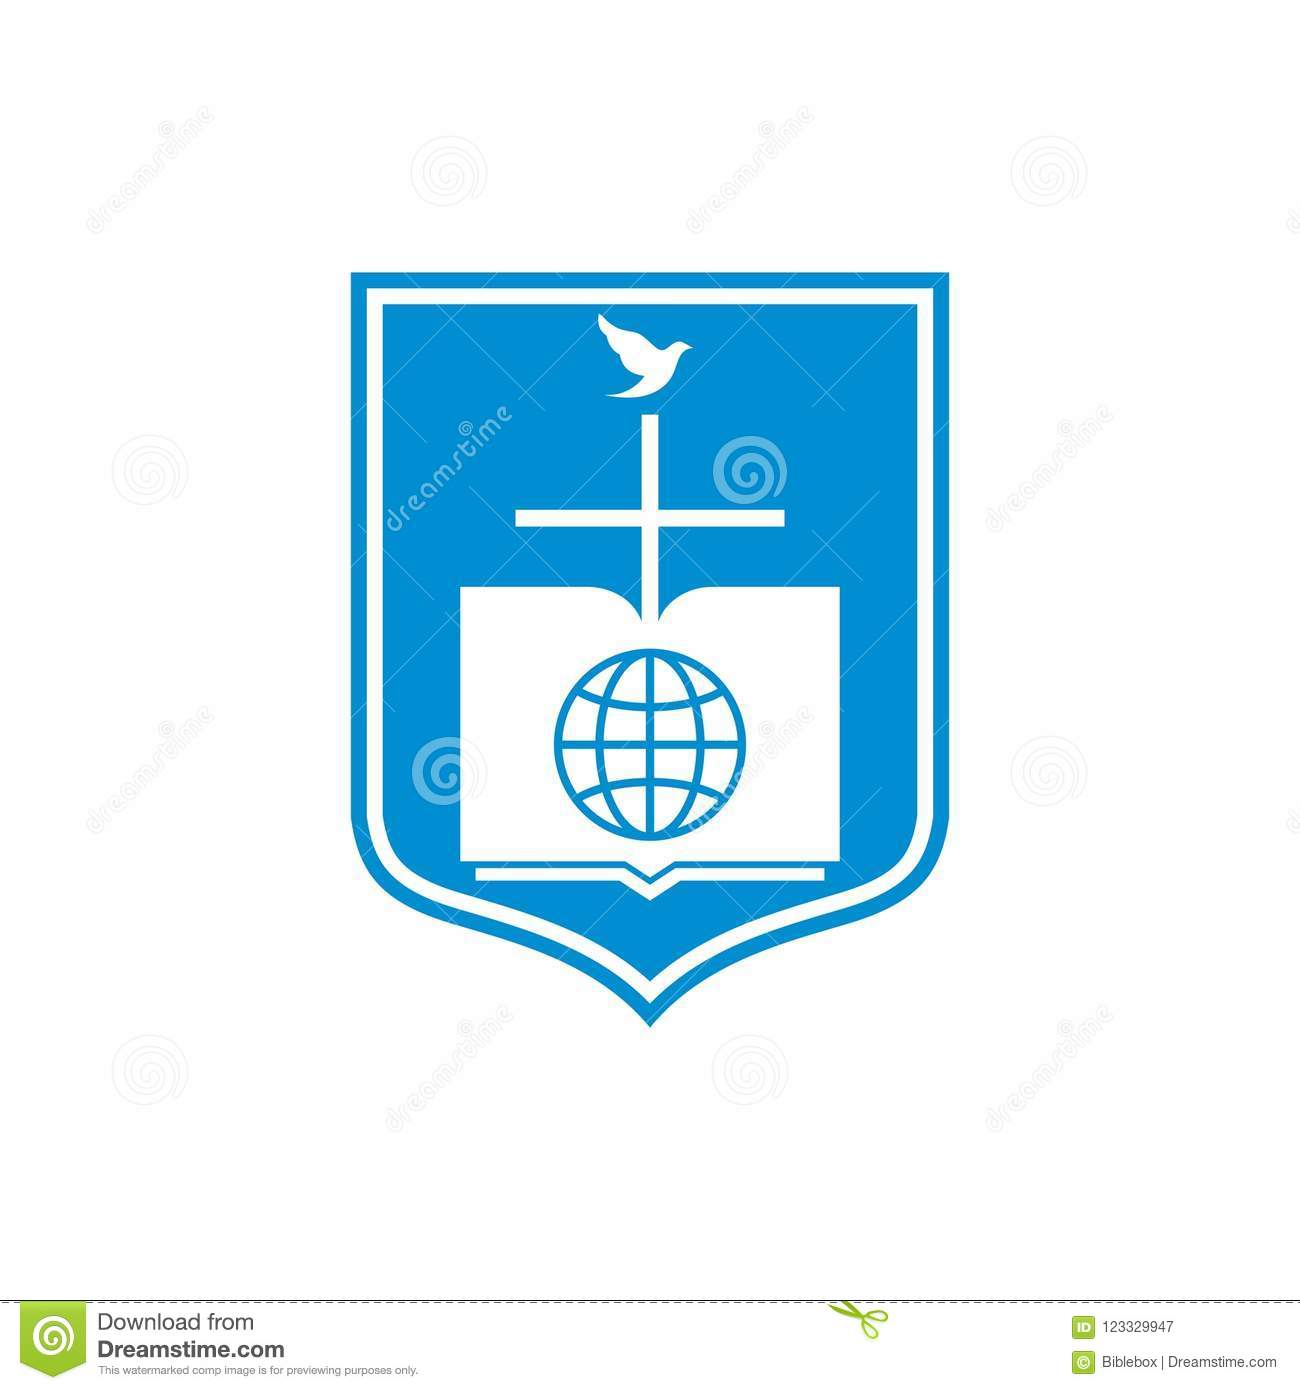 Church logo the cross of jesus an open bible a globe and a dove download church logo the cross of jesus an open bible a globe and altavistaventures Choice Image